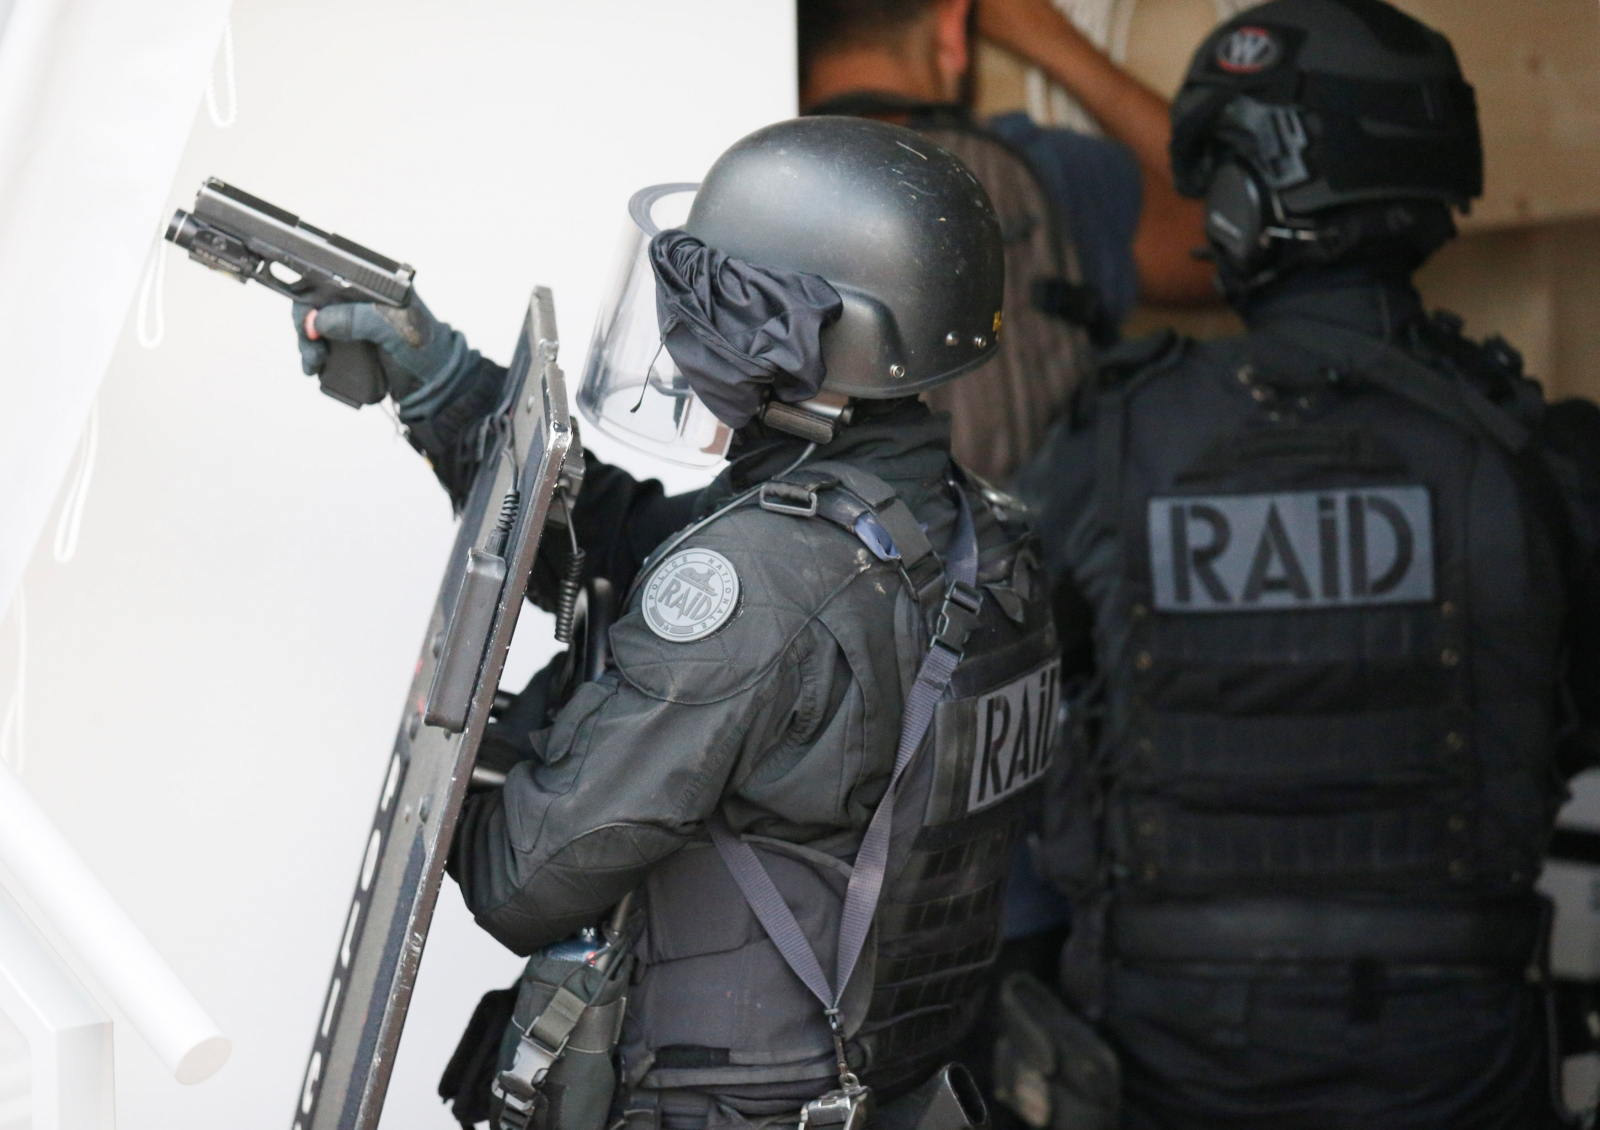 France Raid special force